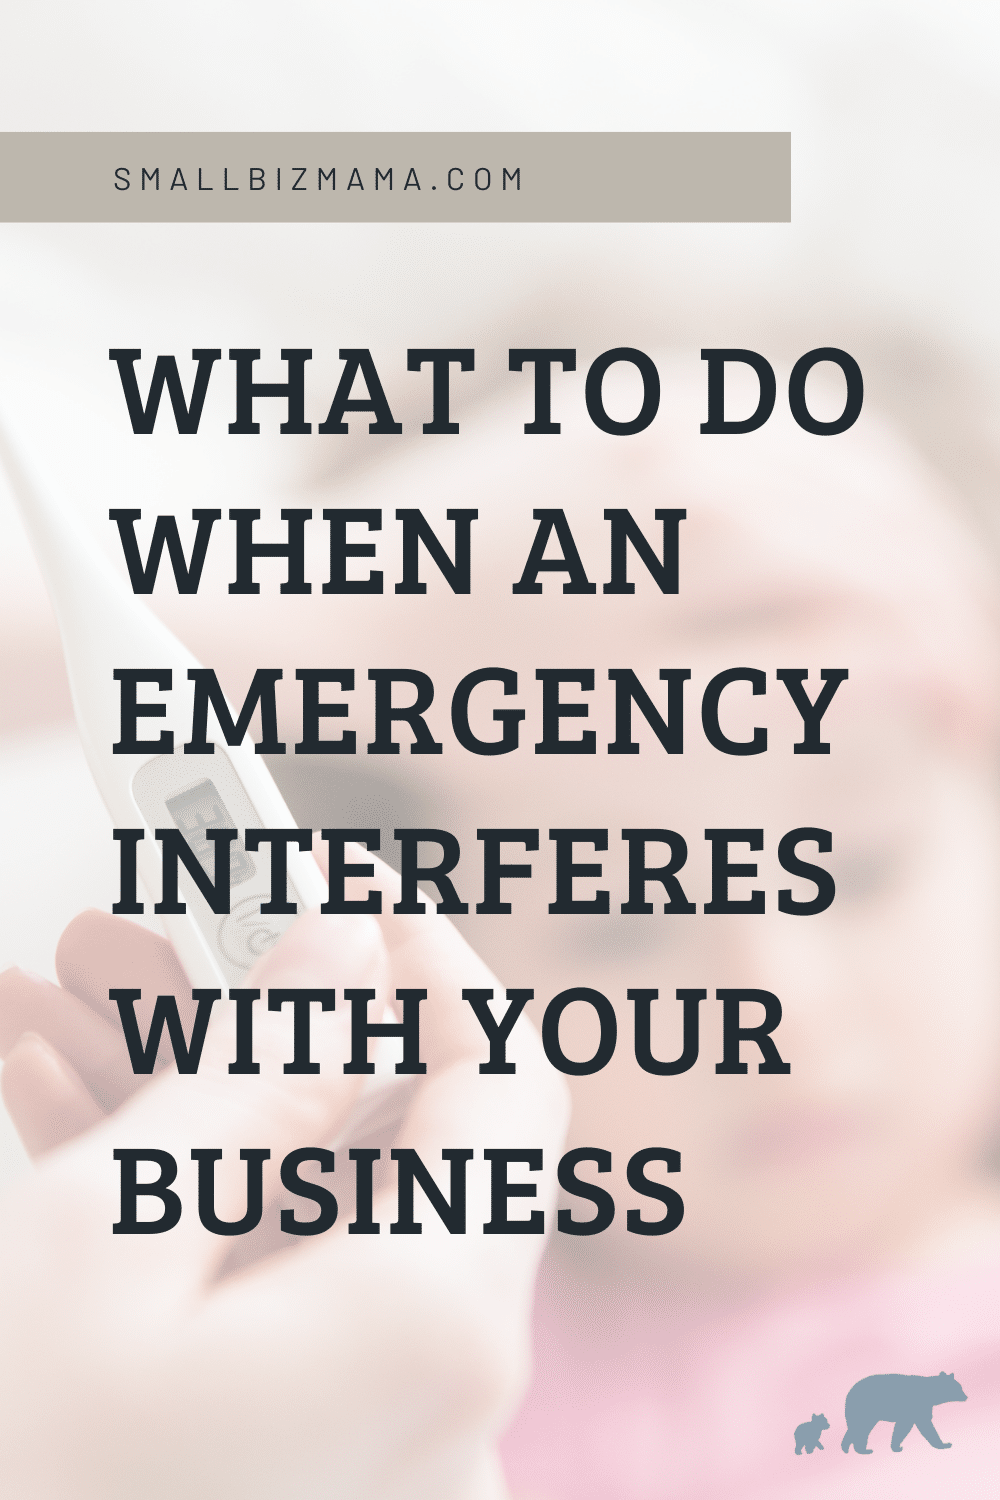 What to do when an emergency interferes with your business